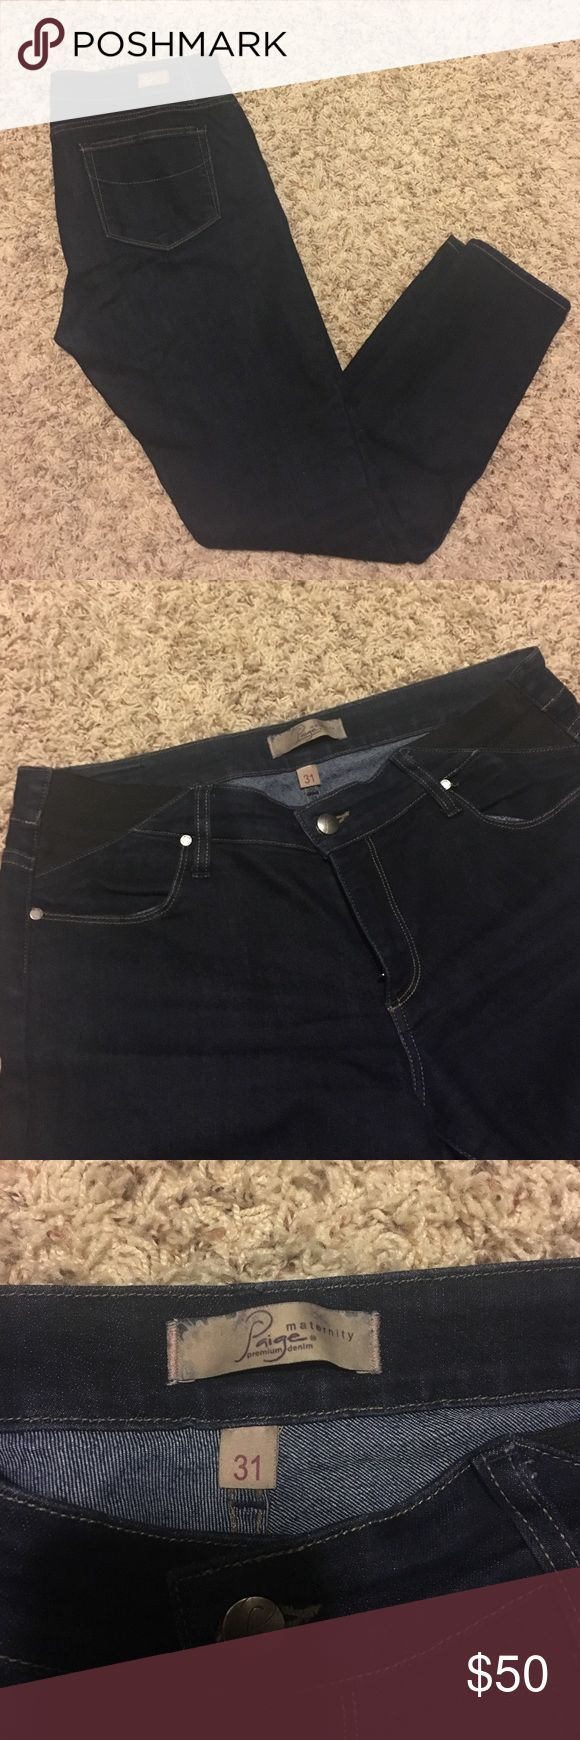 Paige Maternity Jeans Designer Paige Maternity Skinny Jeans with button and stretch sides. I LOVED these jeans during my two pregnancies! Paige Jeans Jeans Skinny